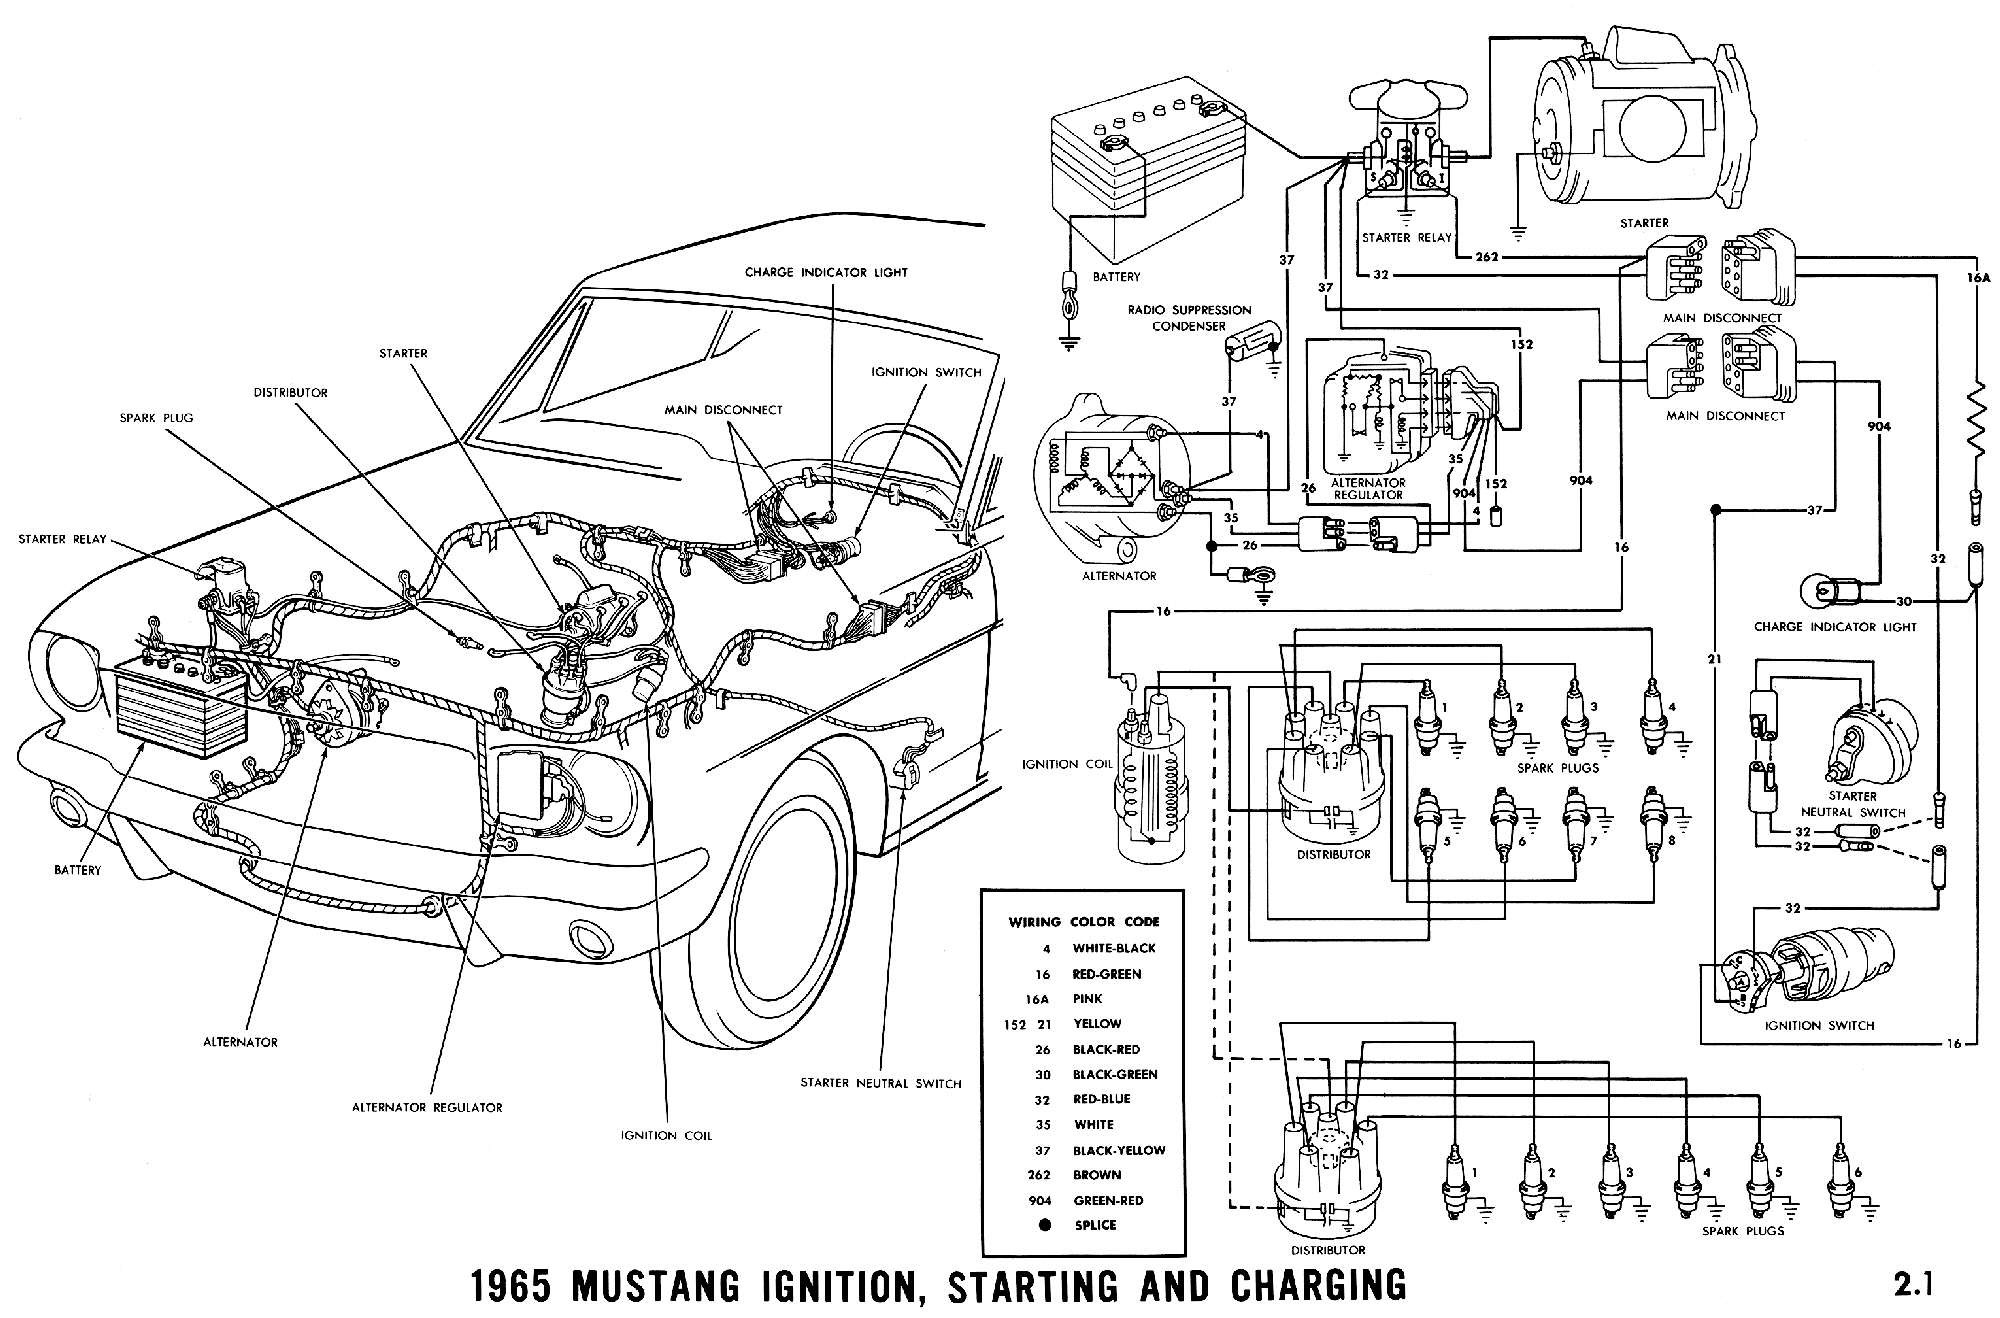 Diesel Engine Parts Diagram 2015 Mustang Engine Diagram Engine Car Parts and Ponent Diagram Of Diesel Engine Parts Diagram